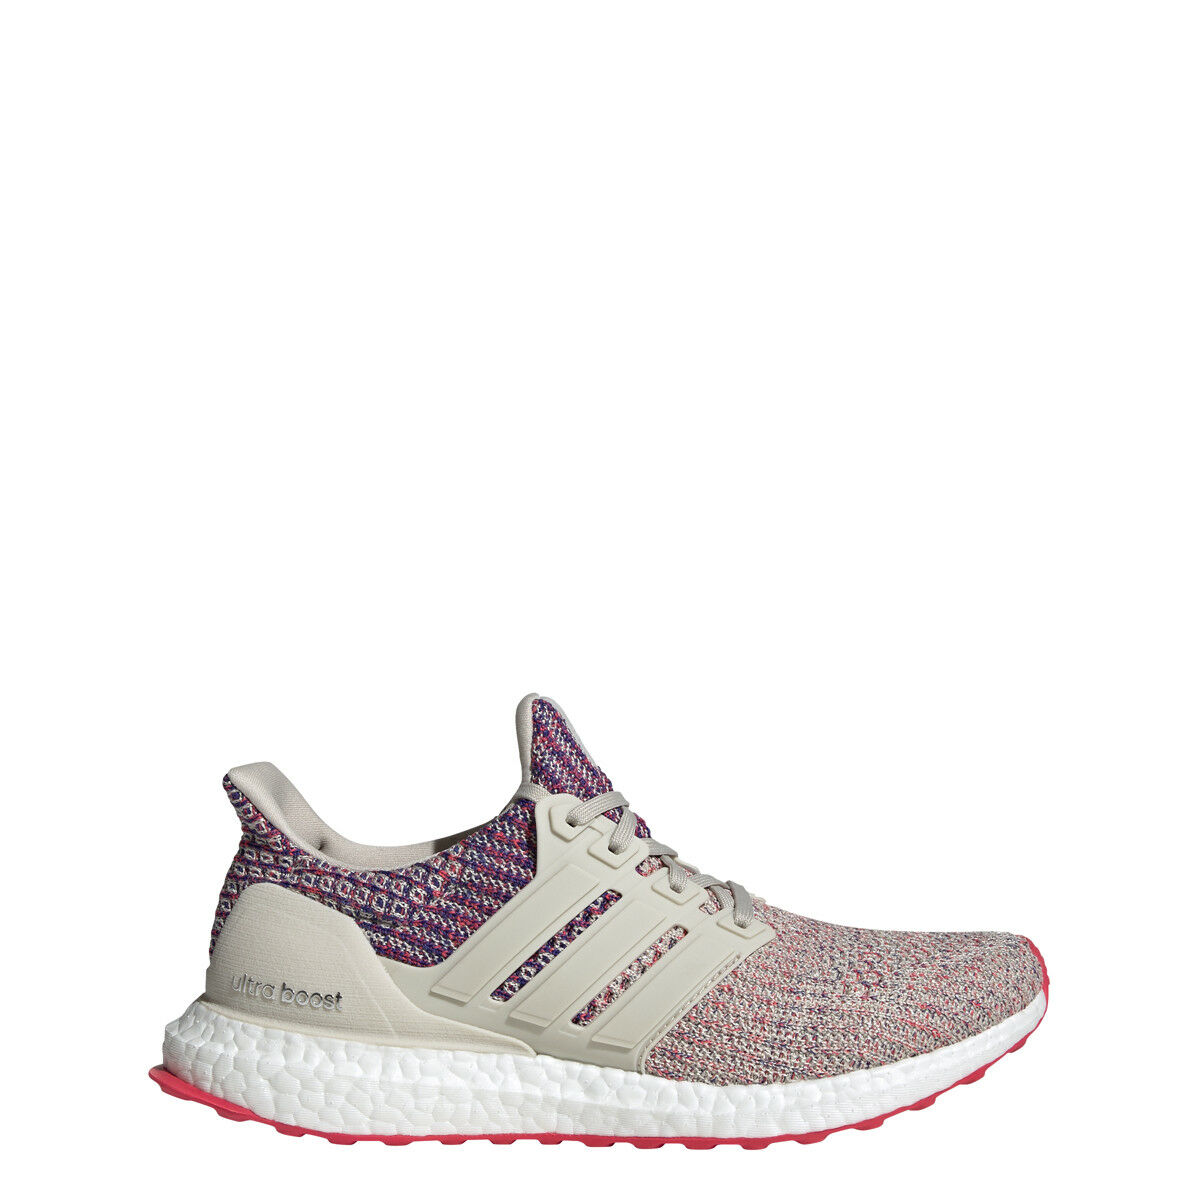 Women's Adidas UltraBOOST Running shoes Brown Shore Red